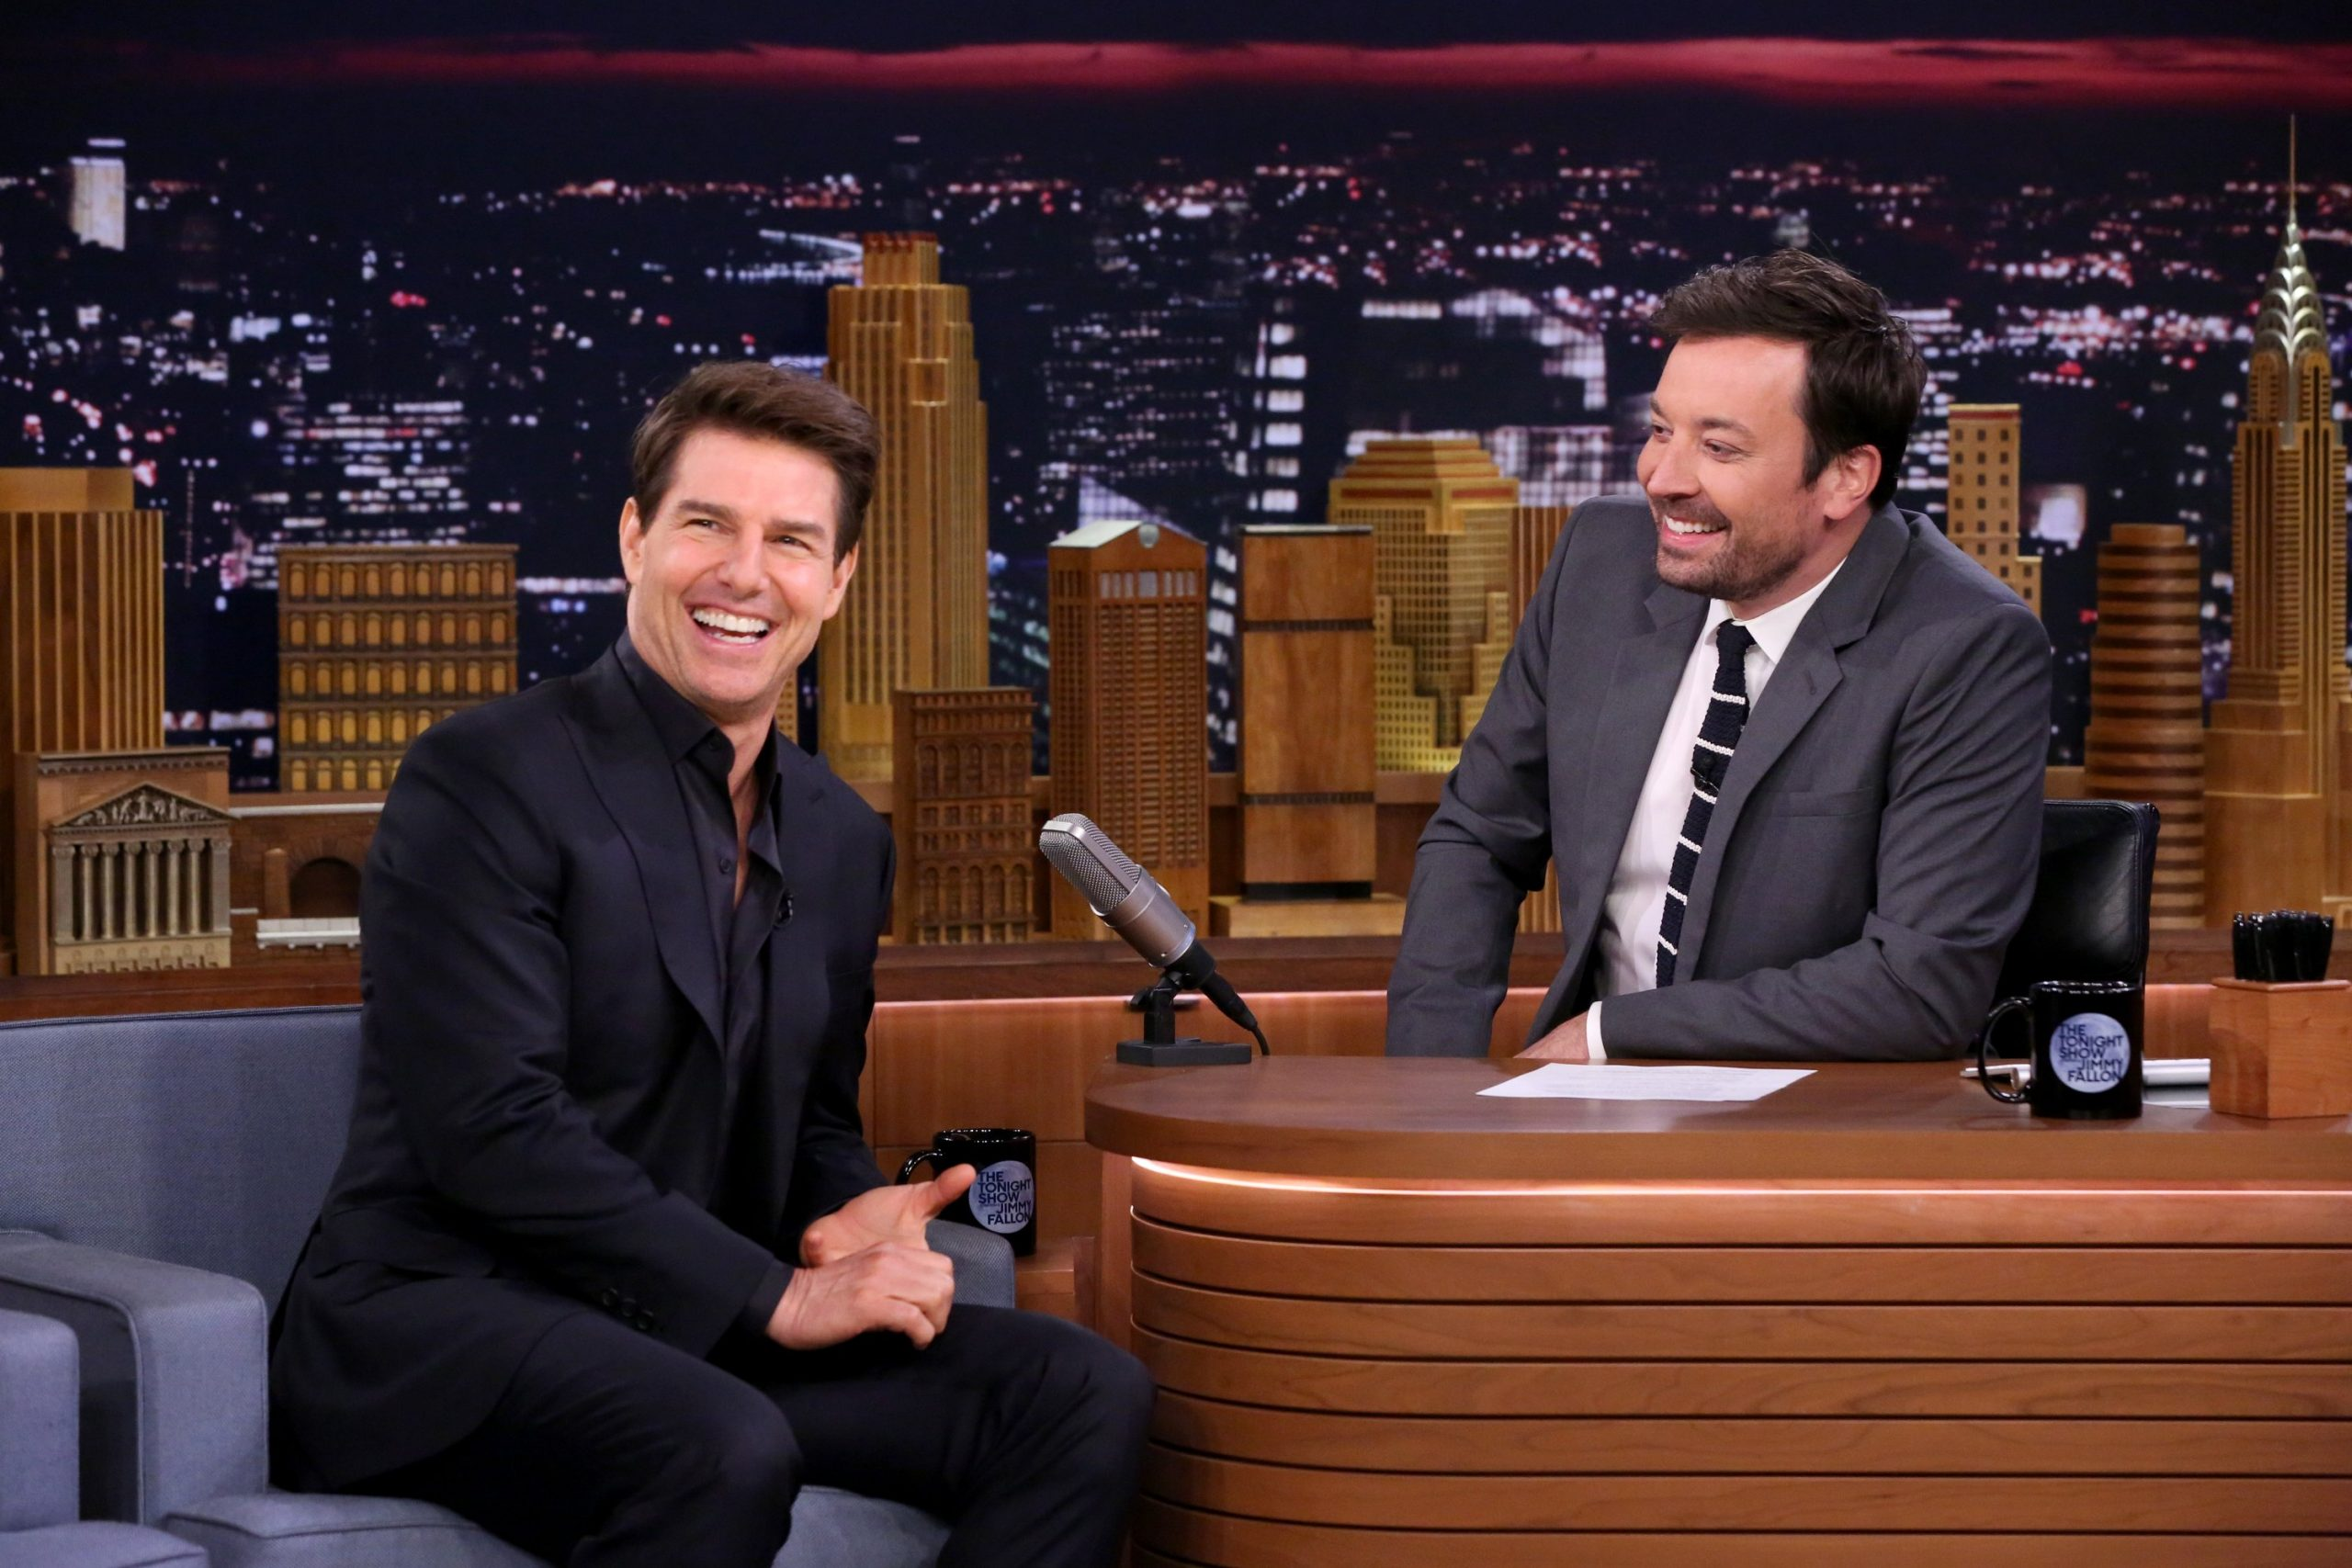 Jimmy Fallon and Tom Cruise together again.....it's a gigglefest.